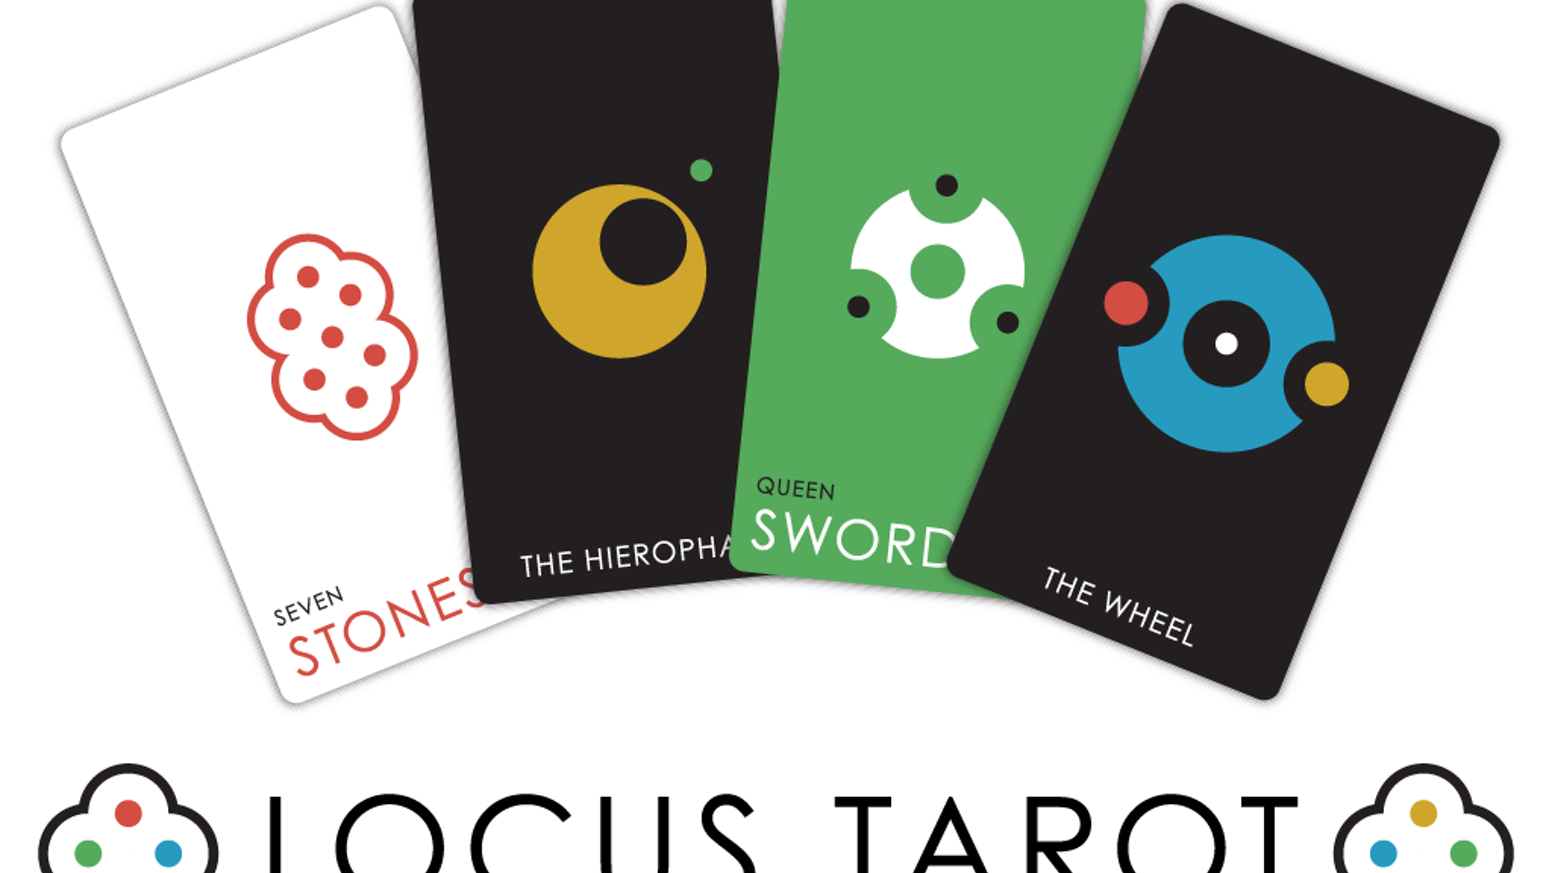 Expand your creativity. Enhance your intuition. Discover more about yourself and your world with this crisp, minimalist tarot deck!